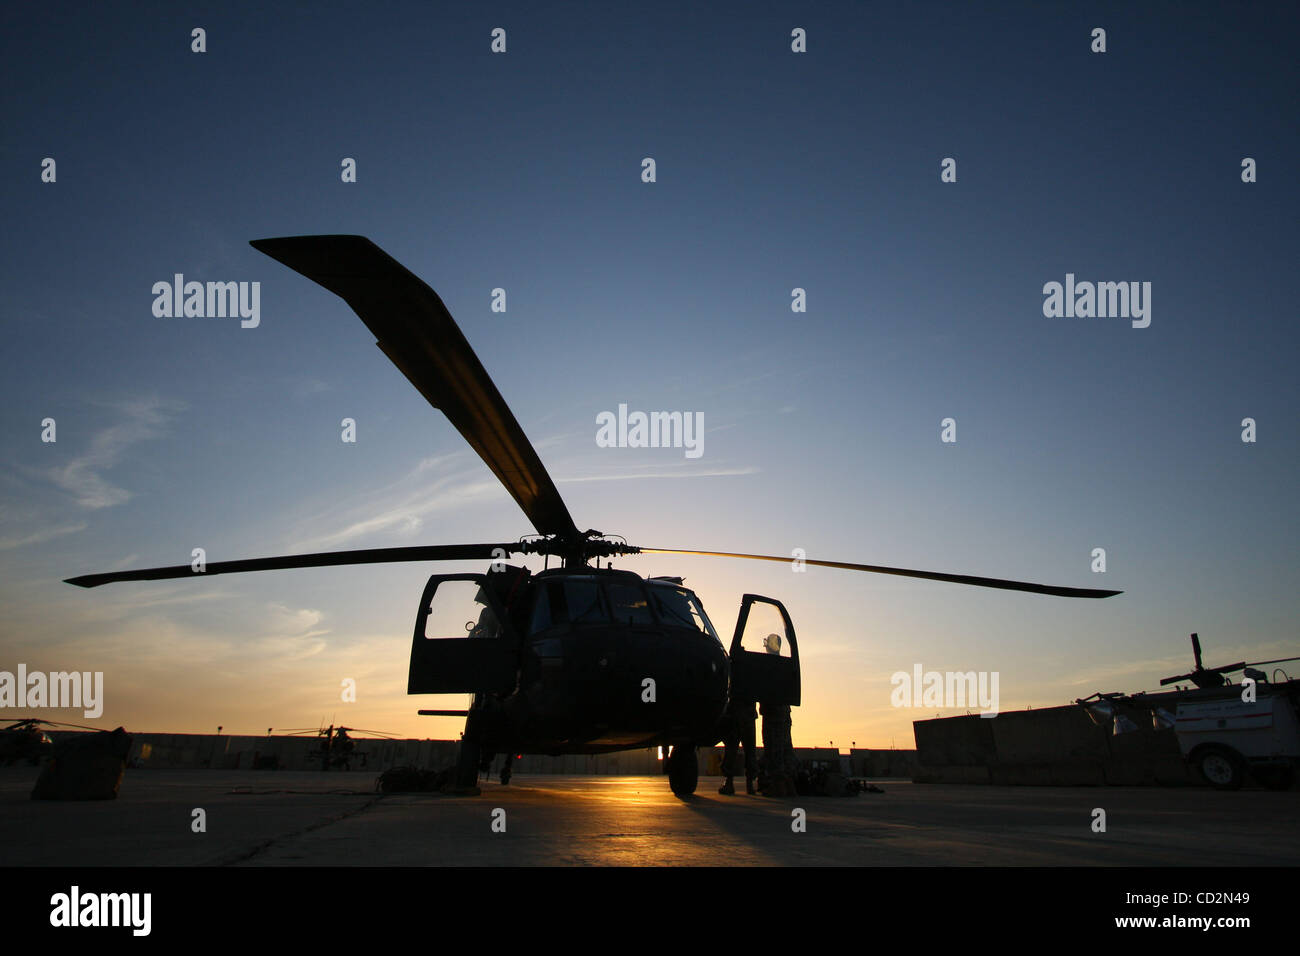 Mar 13, 2008 - Baghdad, Iraq - A US Army UH-60 Blackhawk helicopter receives after- flight maintenance on the flightline - Stock Image